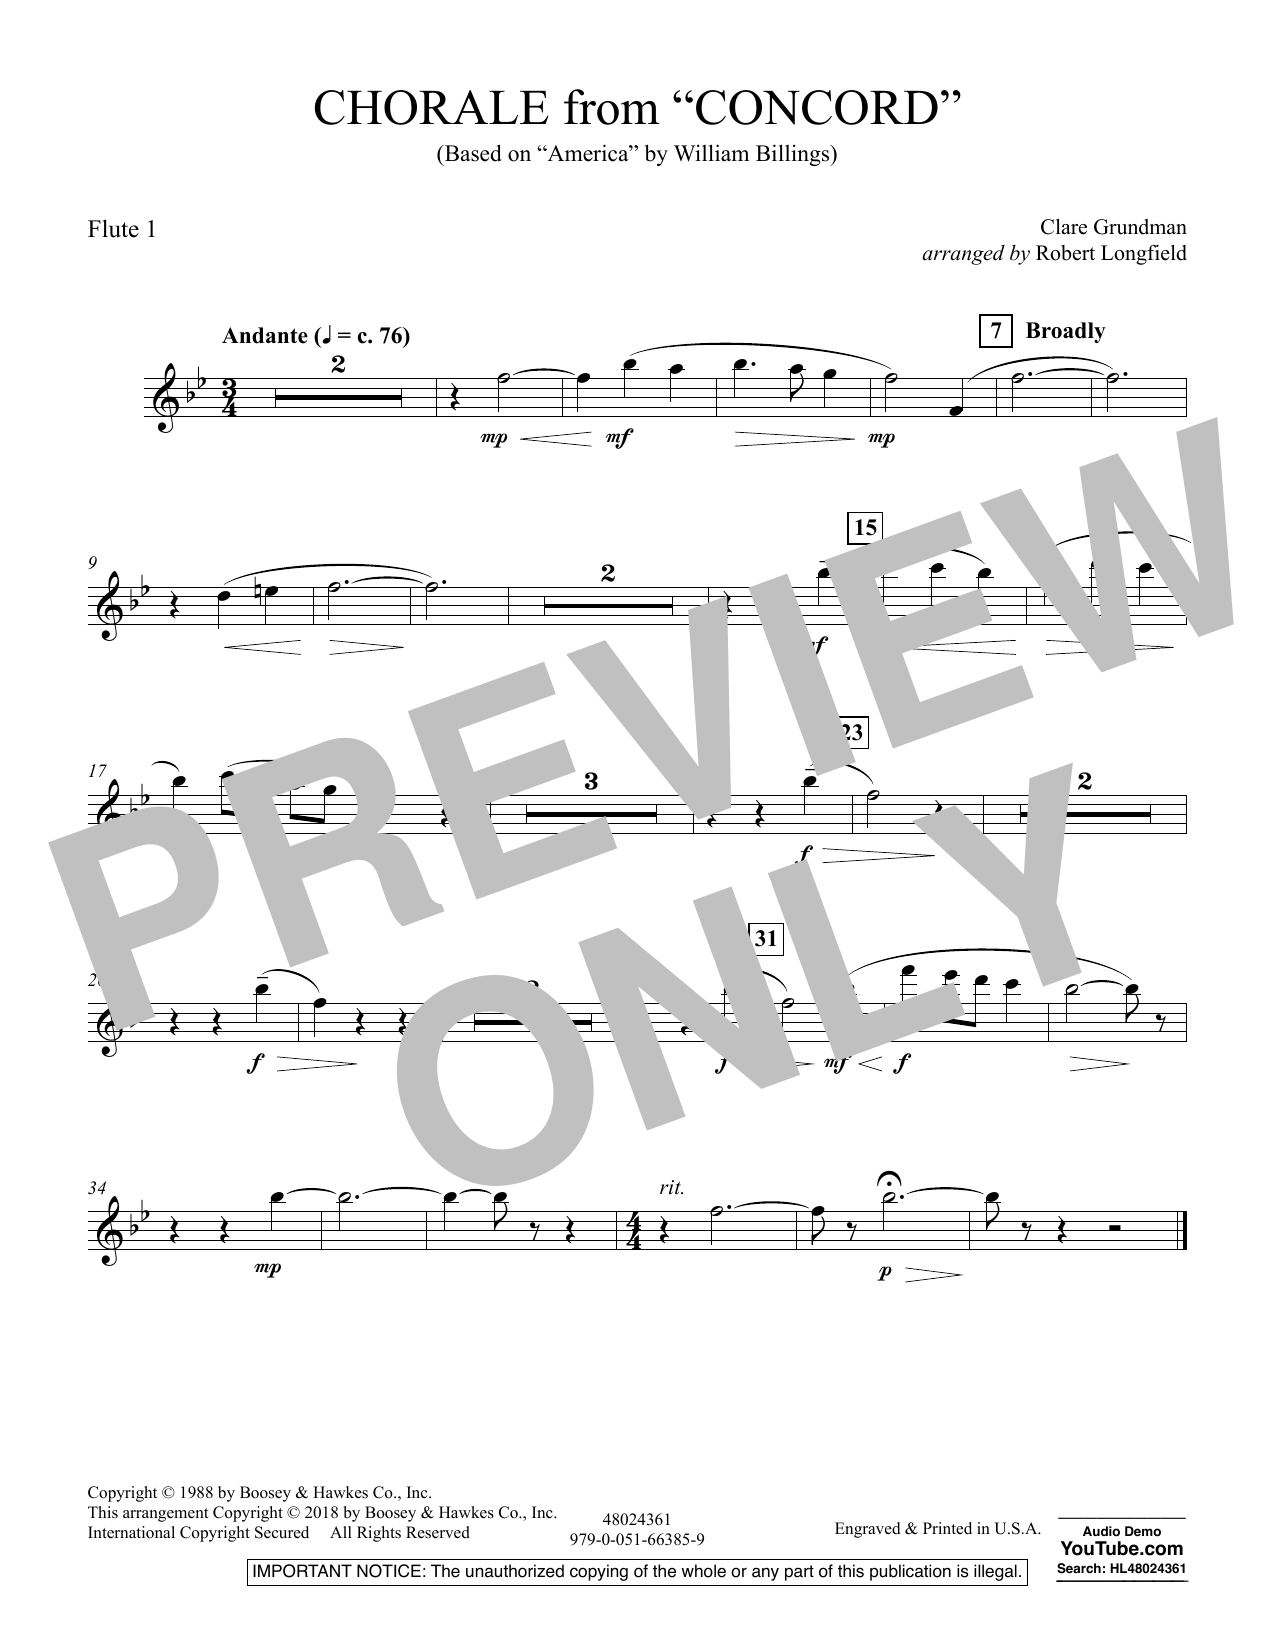 Chorale from Concord - Flute 1 (Concert Band)